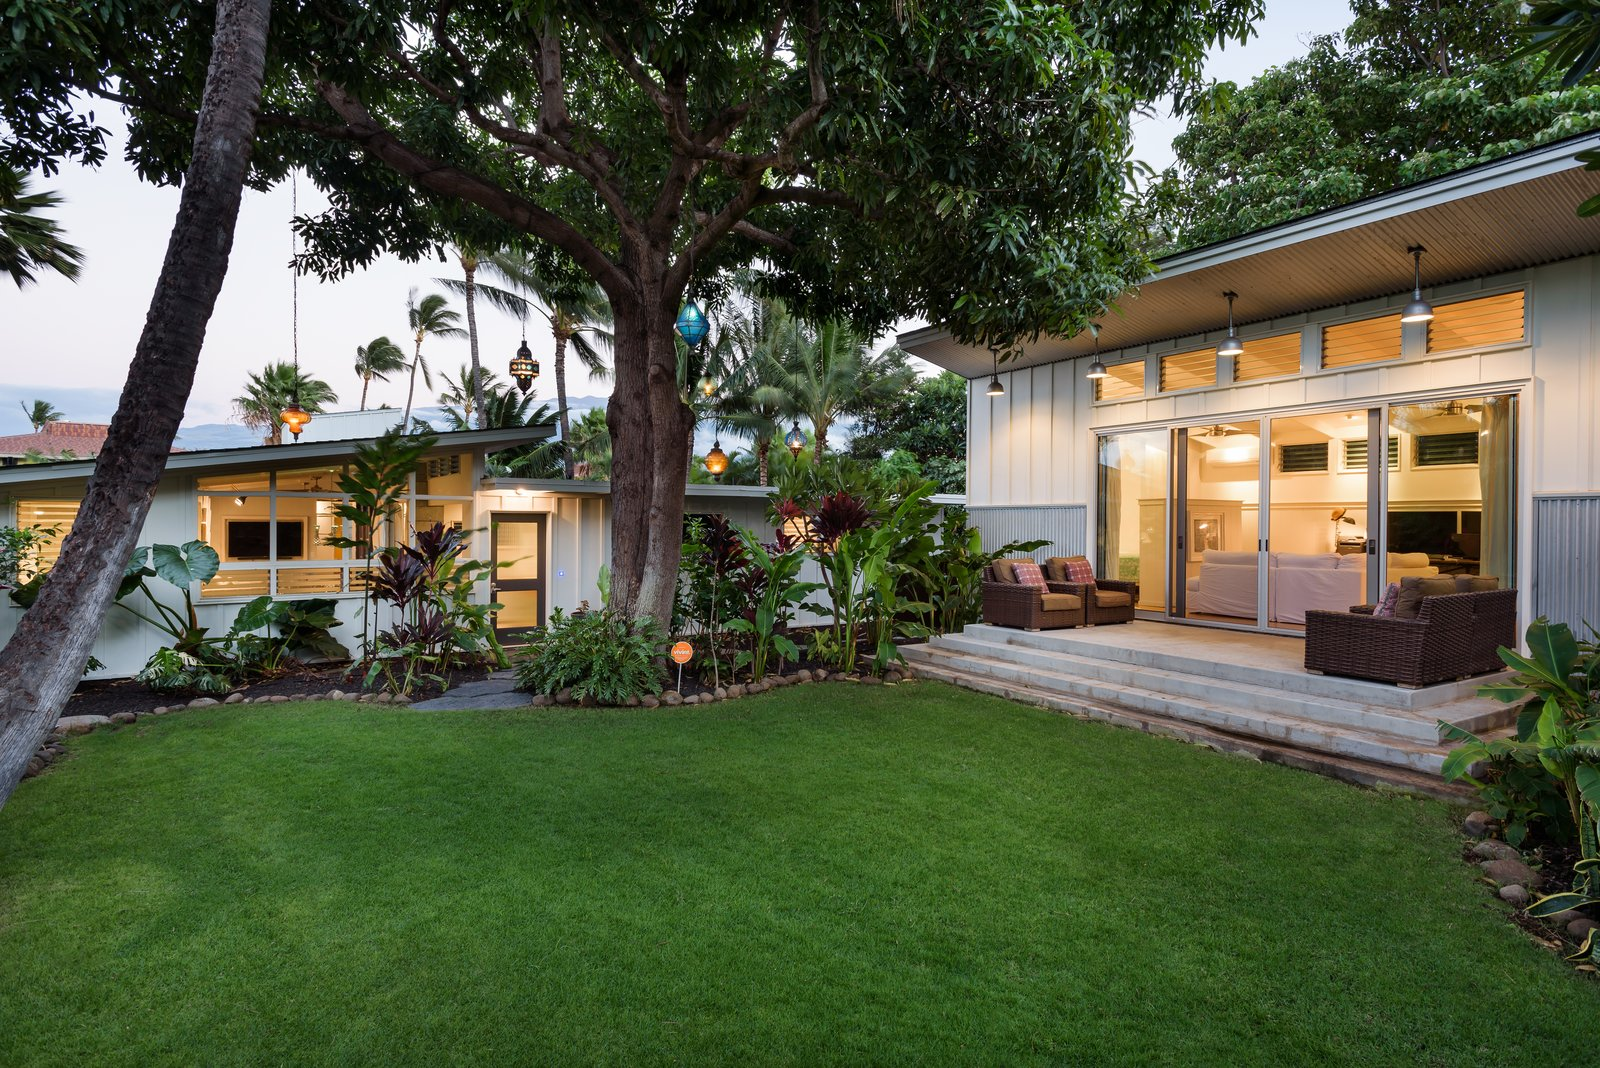 A Renovated Hawaiian Beach House From the 1950s Asks $1.79M